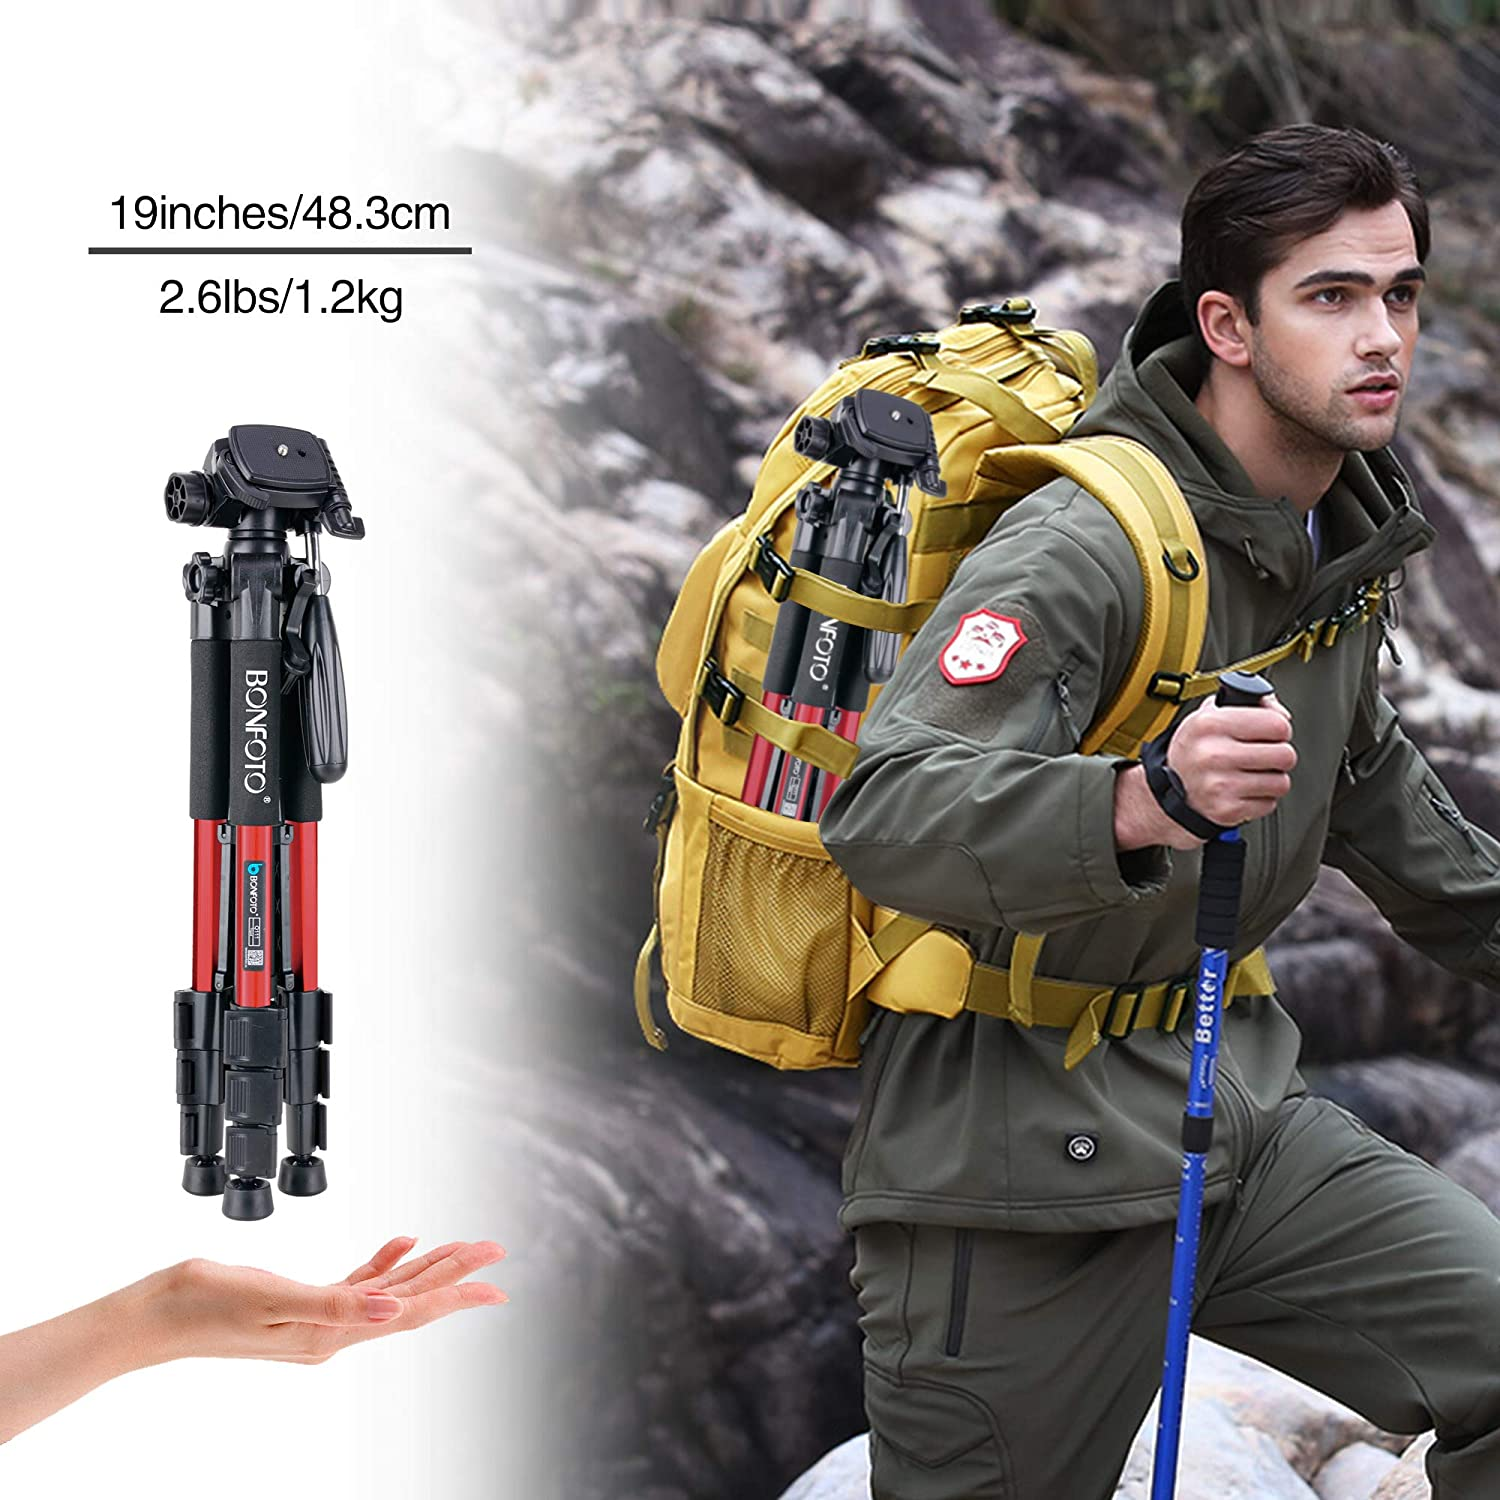 BONFOTO Q111 Camera and Phone Tripod Protable Light Weight Video Selfie for Canon Nikon Sony DSLR Projector Gopro and Smartphones Live Black